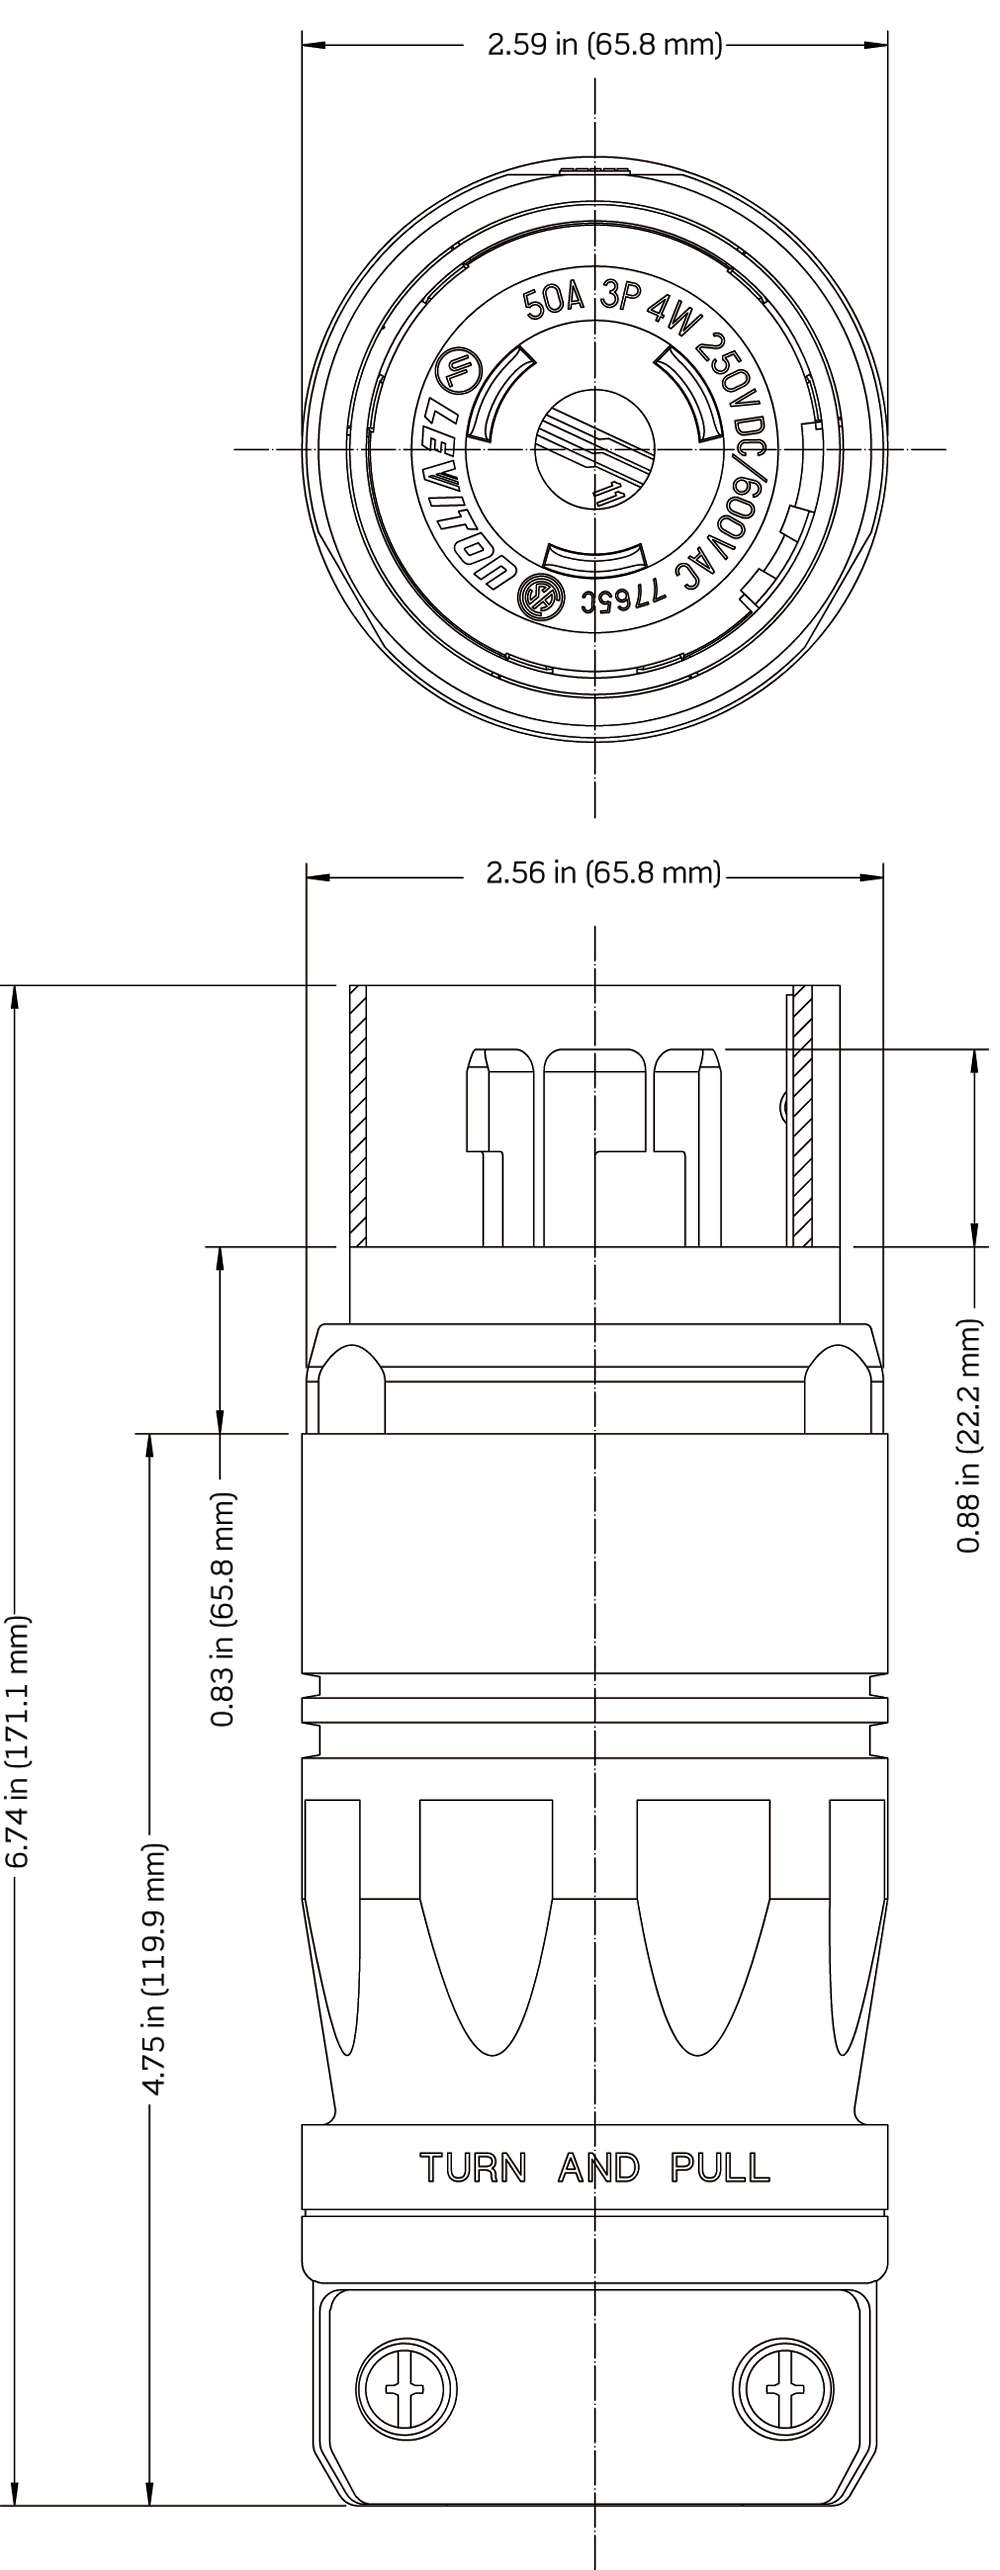 7765c Plug Wiring Diagram For Leviton Also Dc Power Jack Connector Male Instruction Sheet Black And White Installation